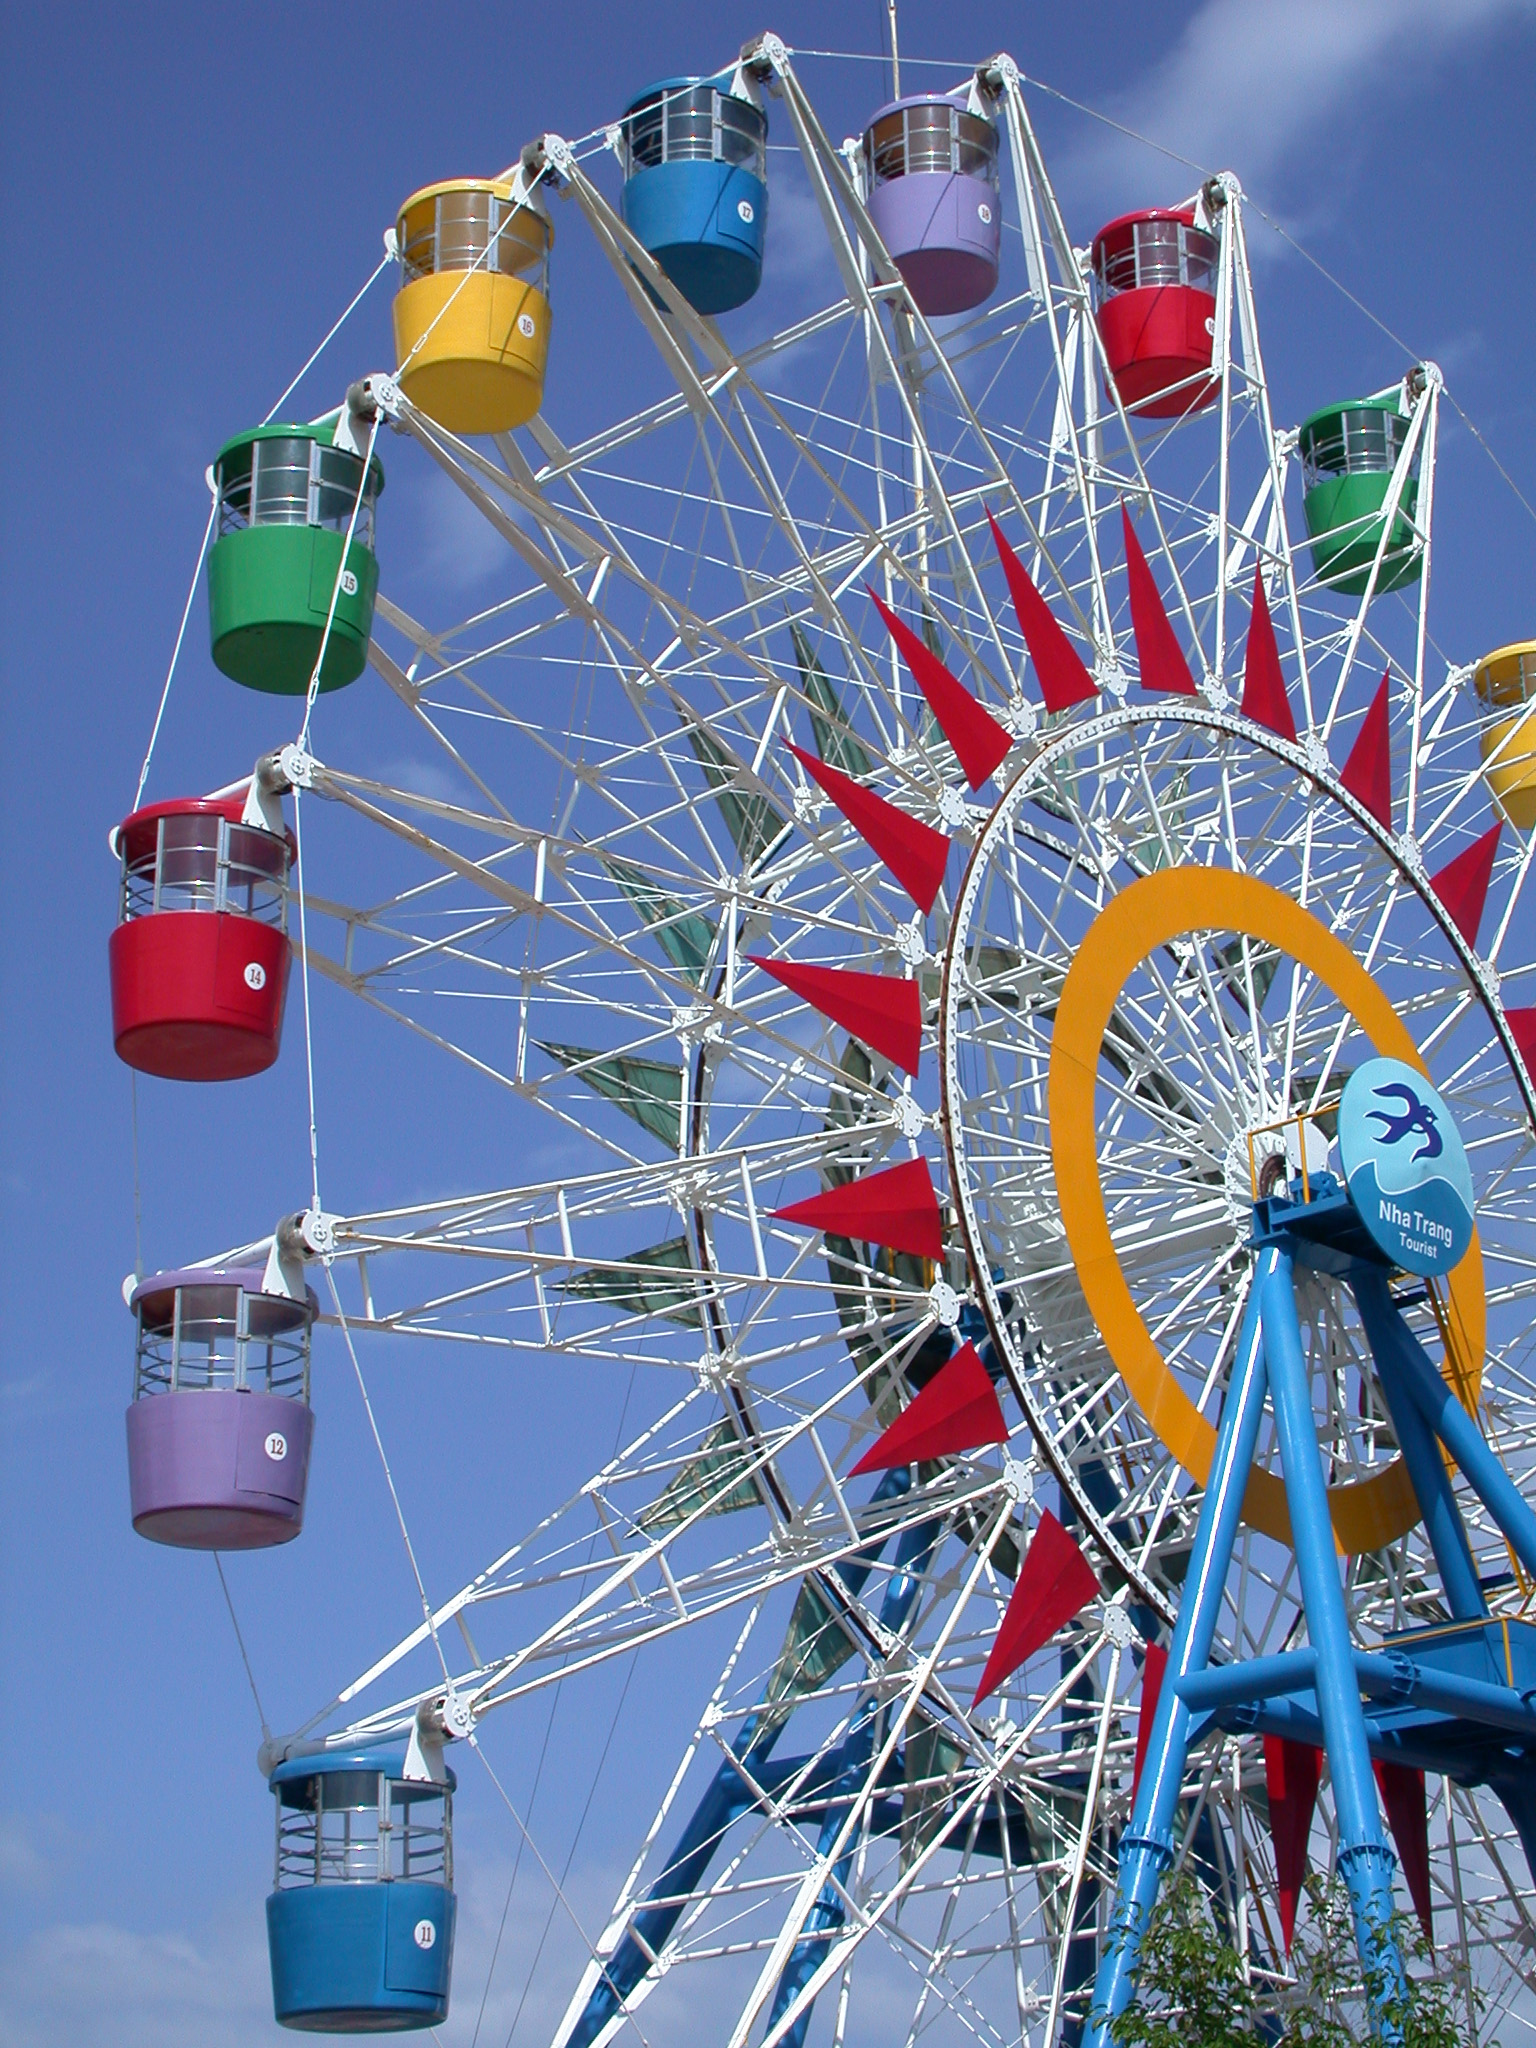 Check-out-one-of-the-best-Orange-County-Events-through-the-Tustin-Tiller-Festival